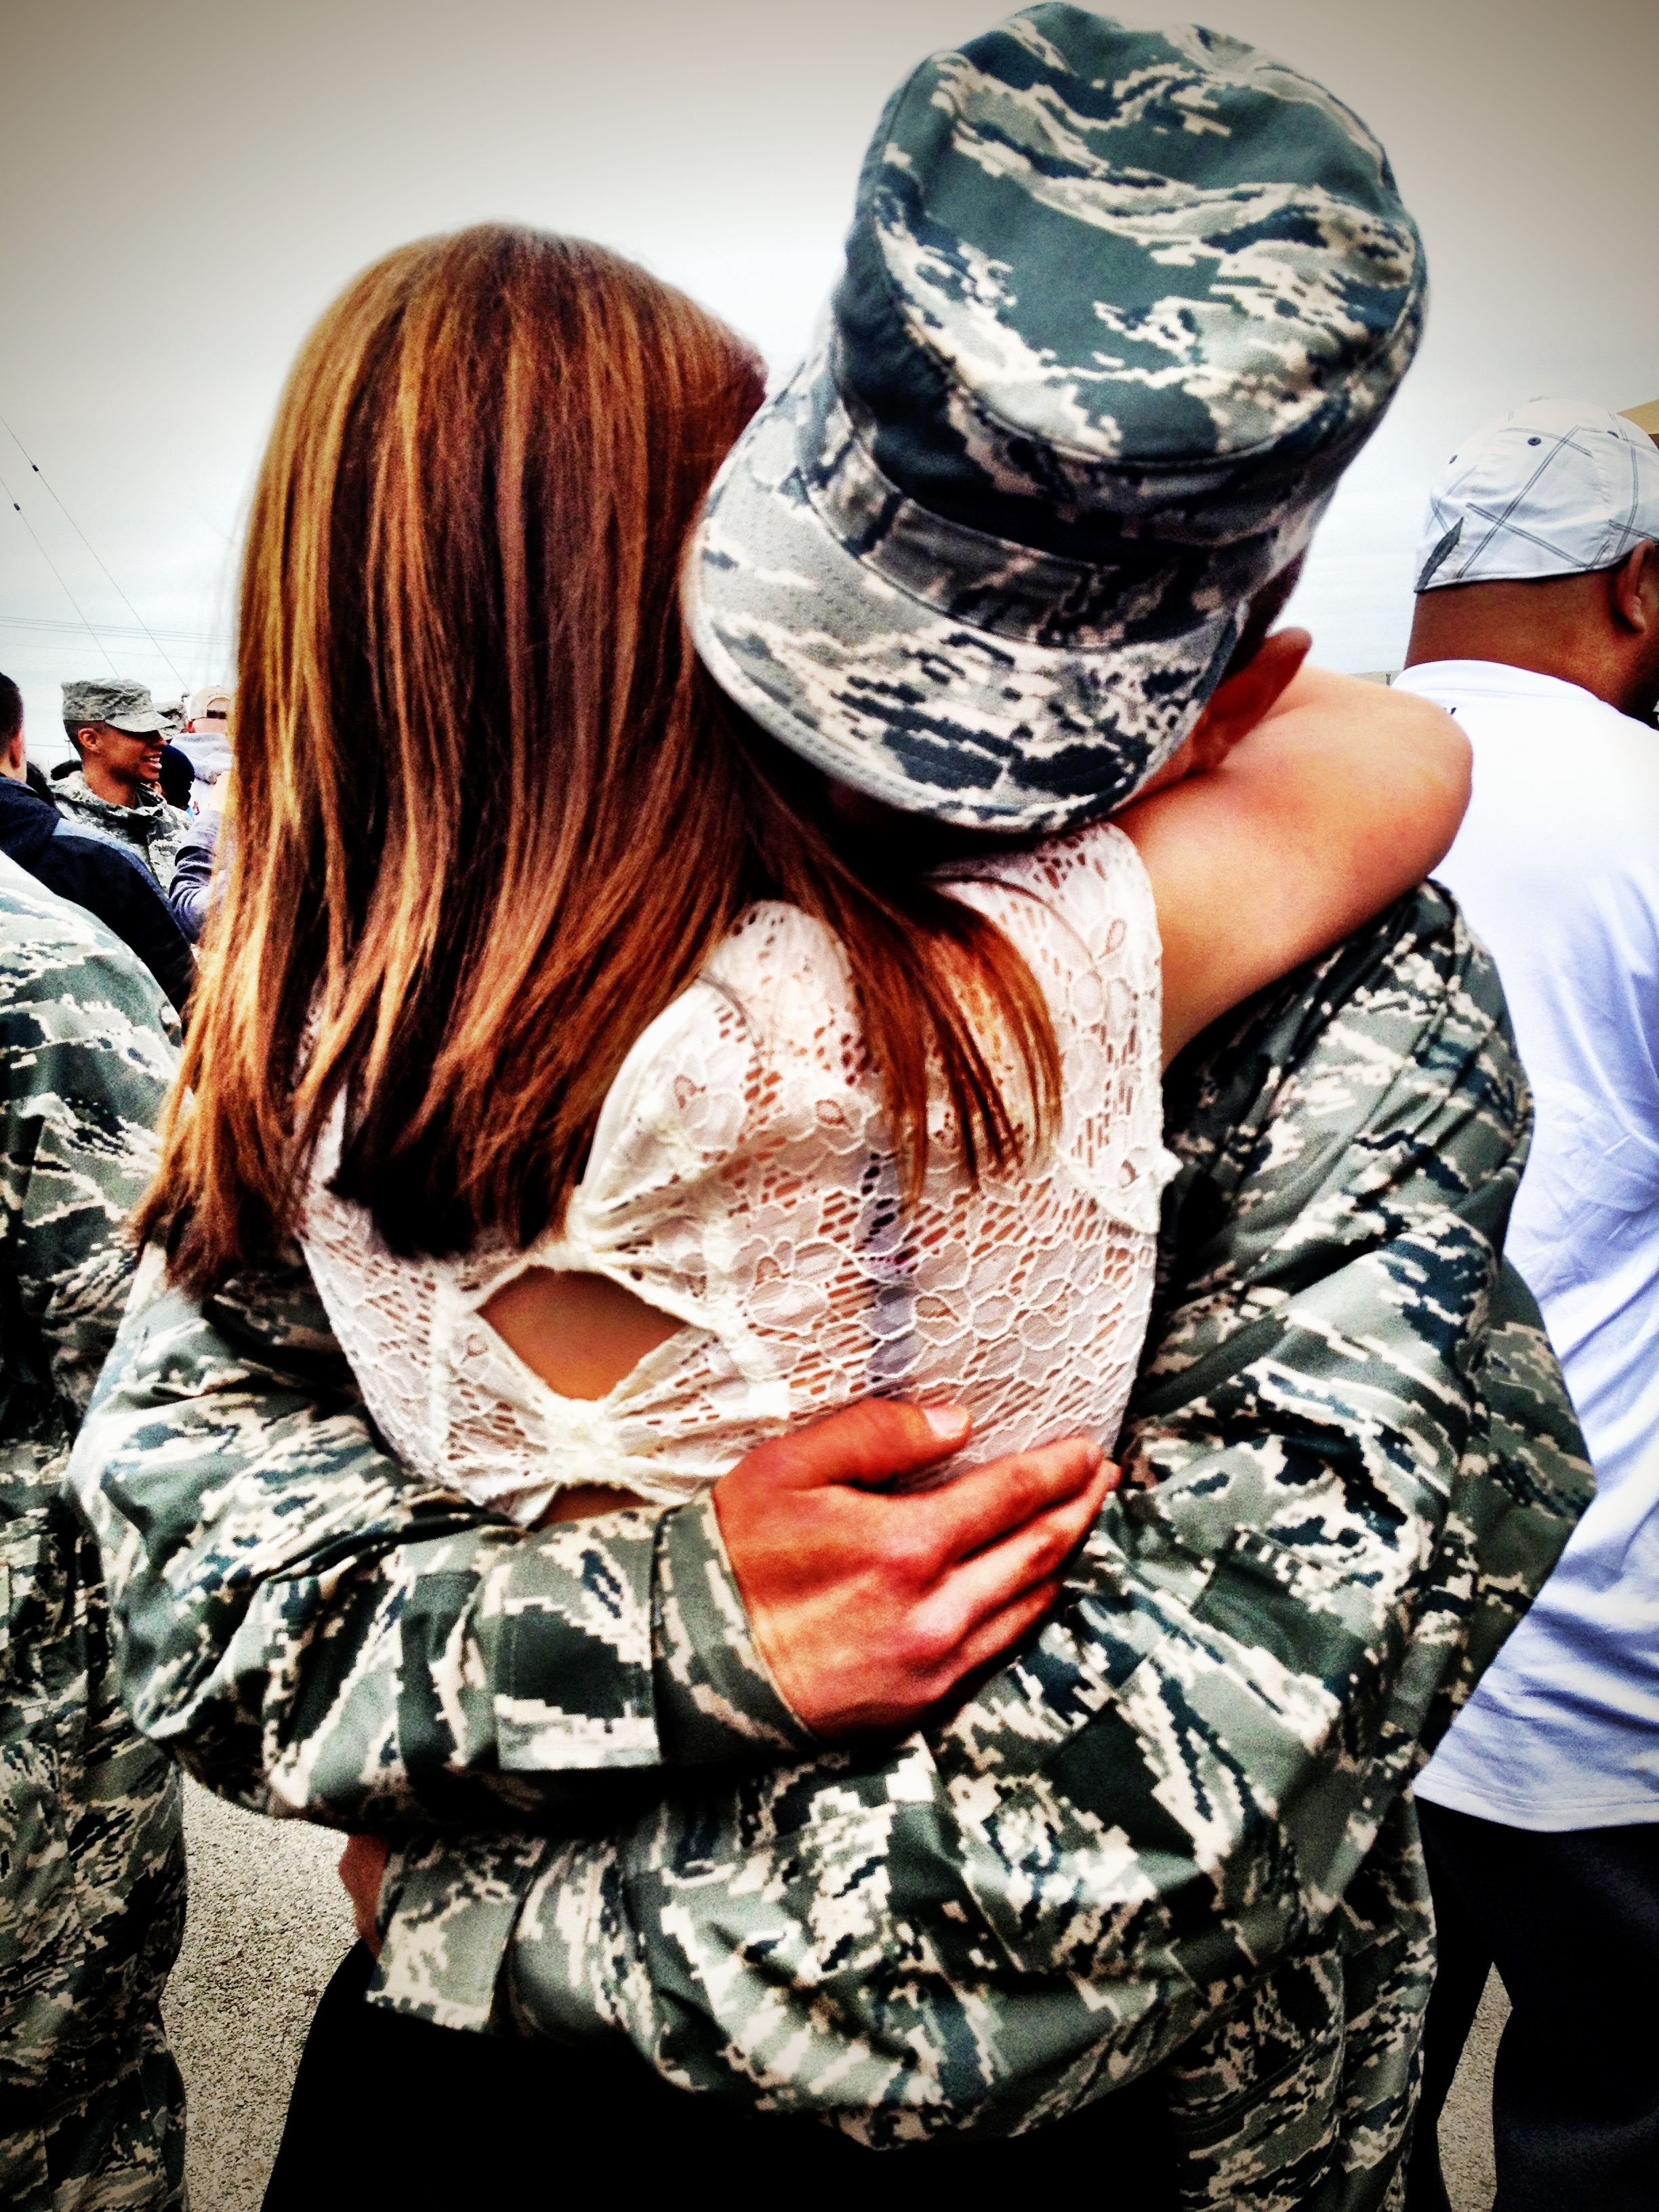 Best military online dating sites